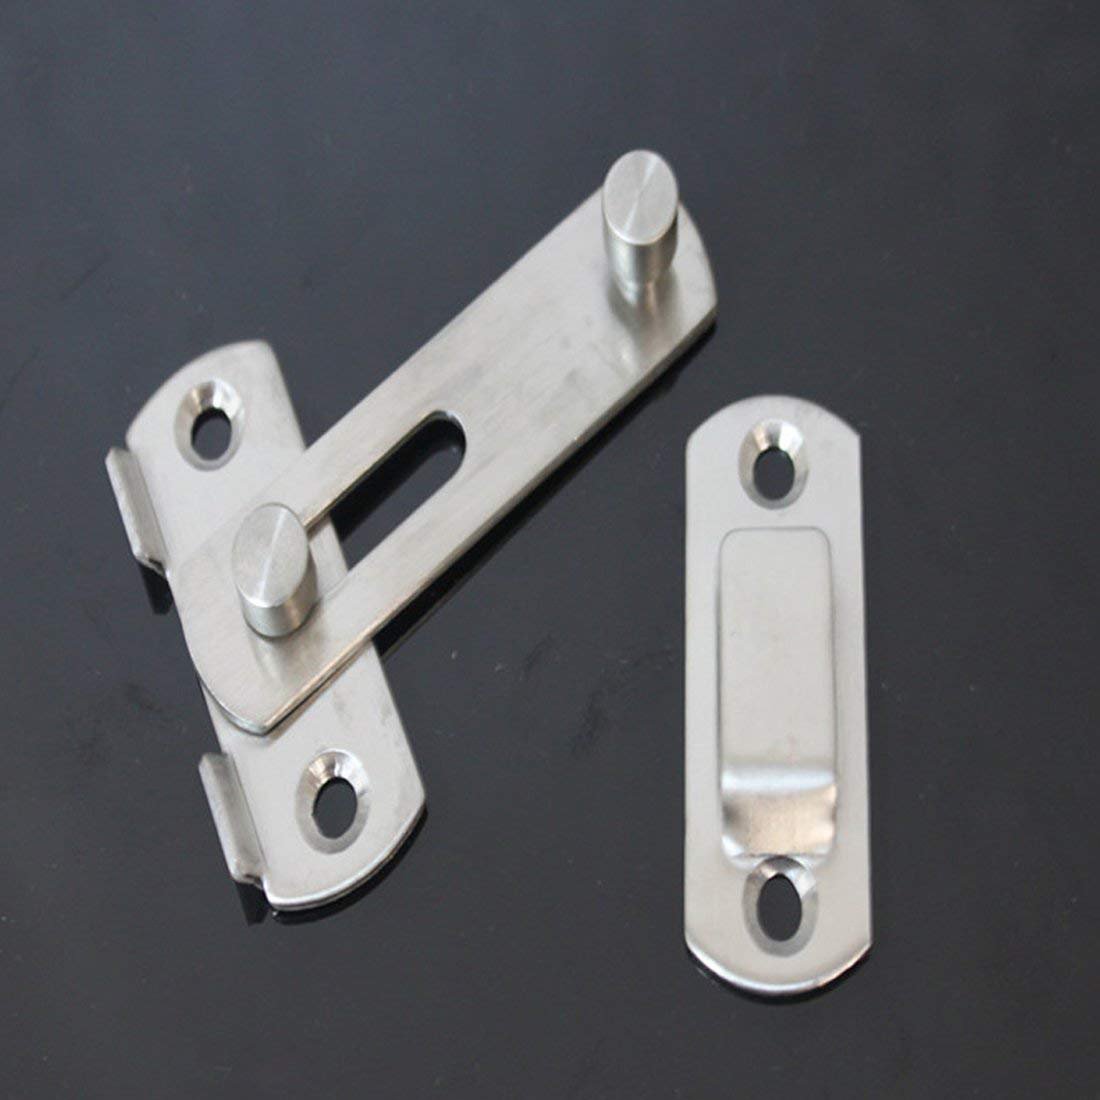 70x50mm Hot Sale A Type Latch Metal Hasp Latch Lock Sliding Door Lock/Buckle For Window Cabinet Fitting Mobile Buckle